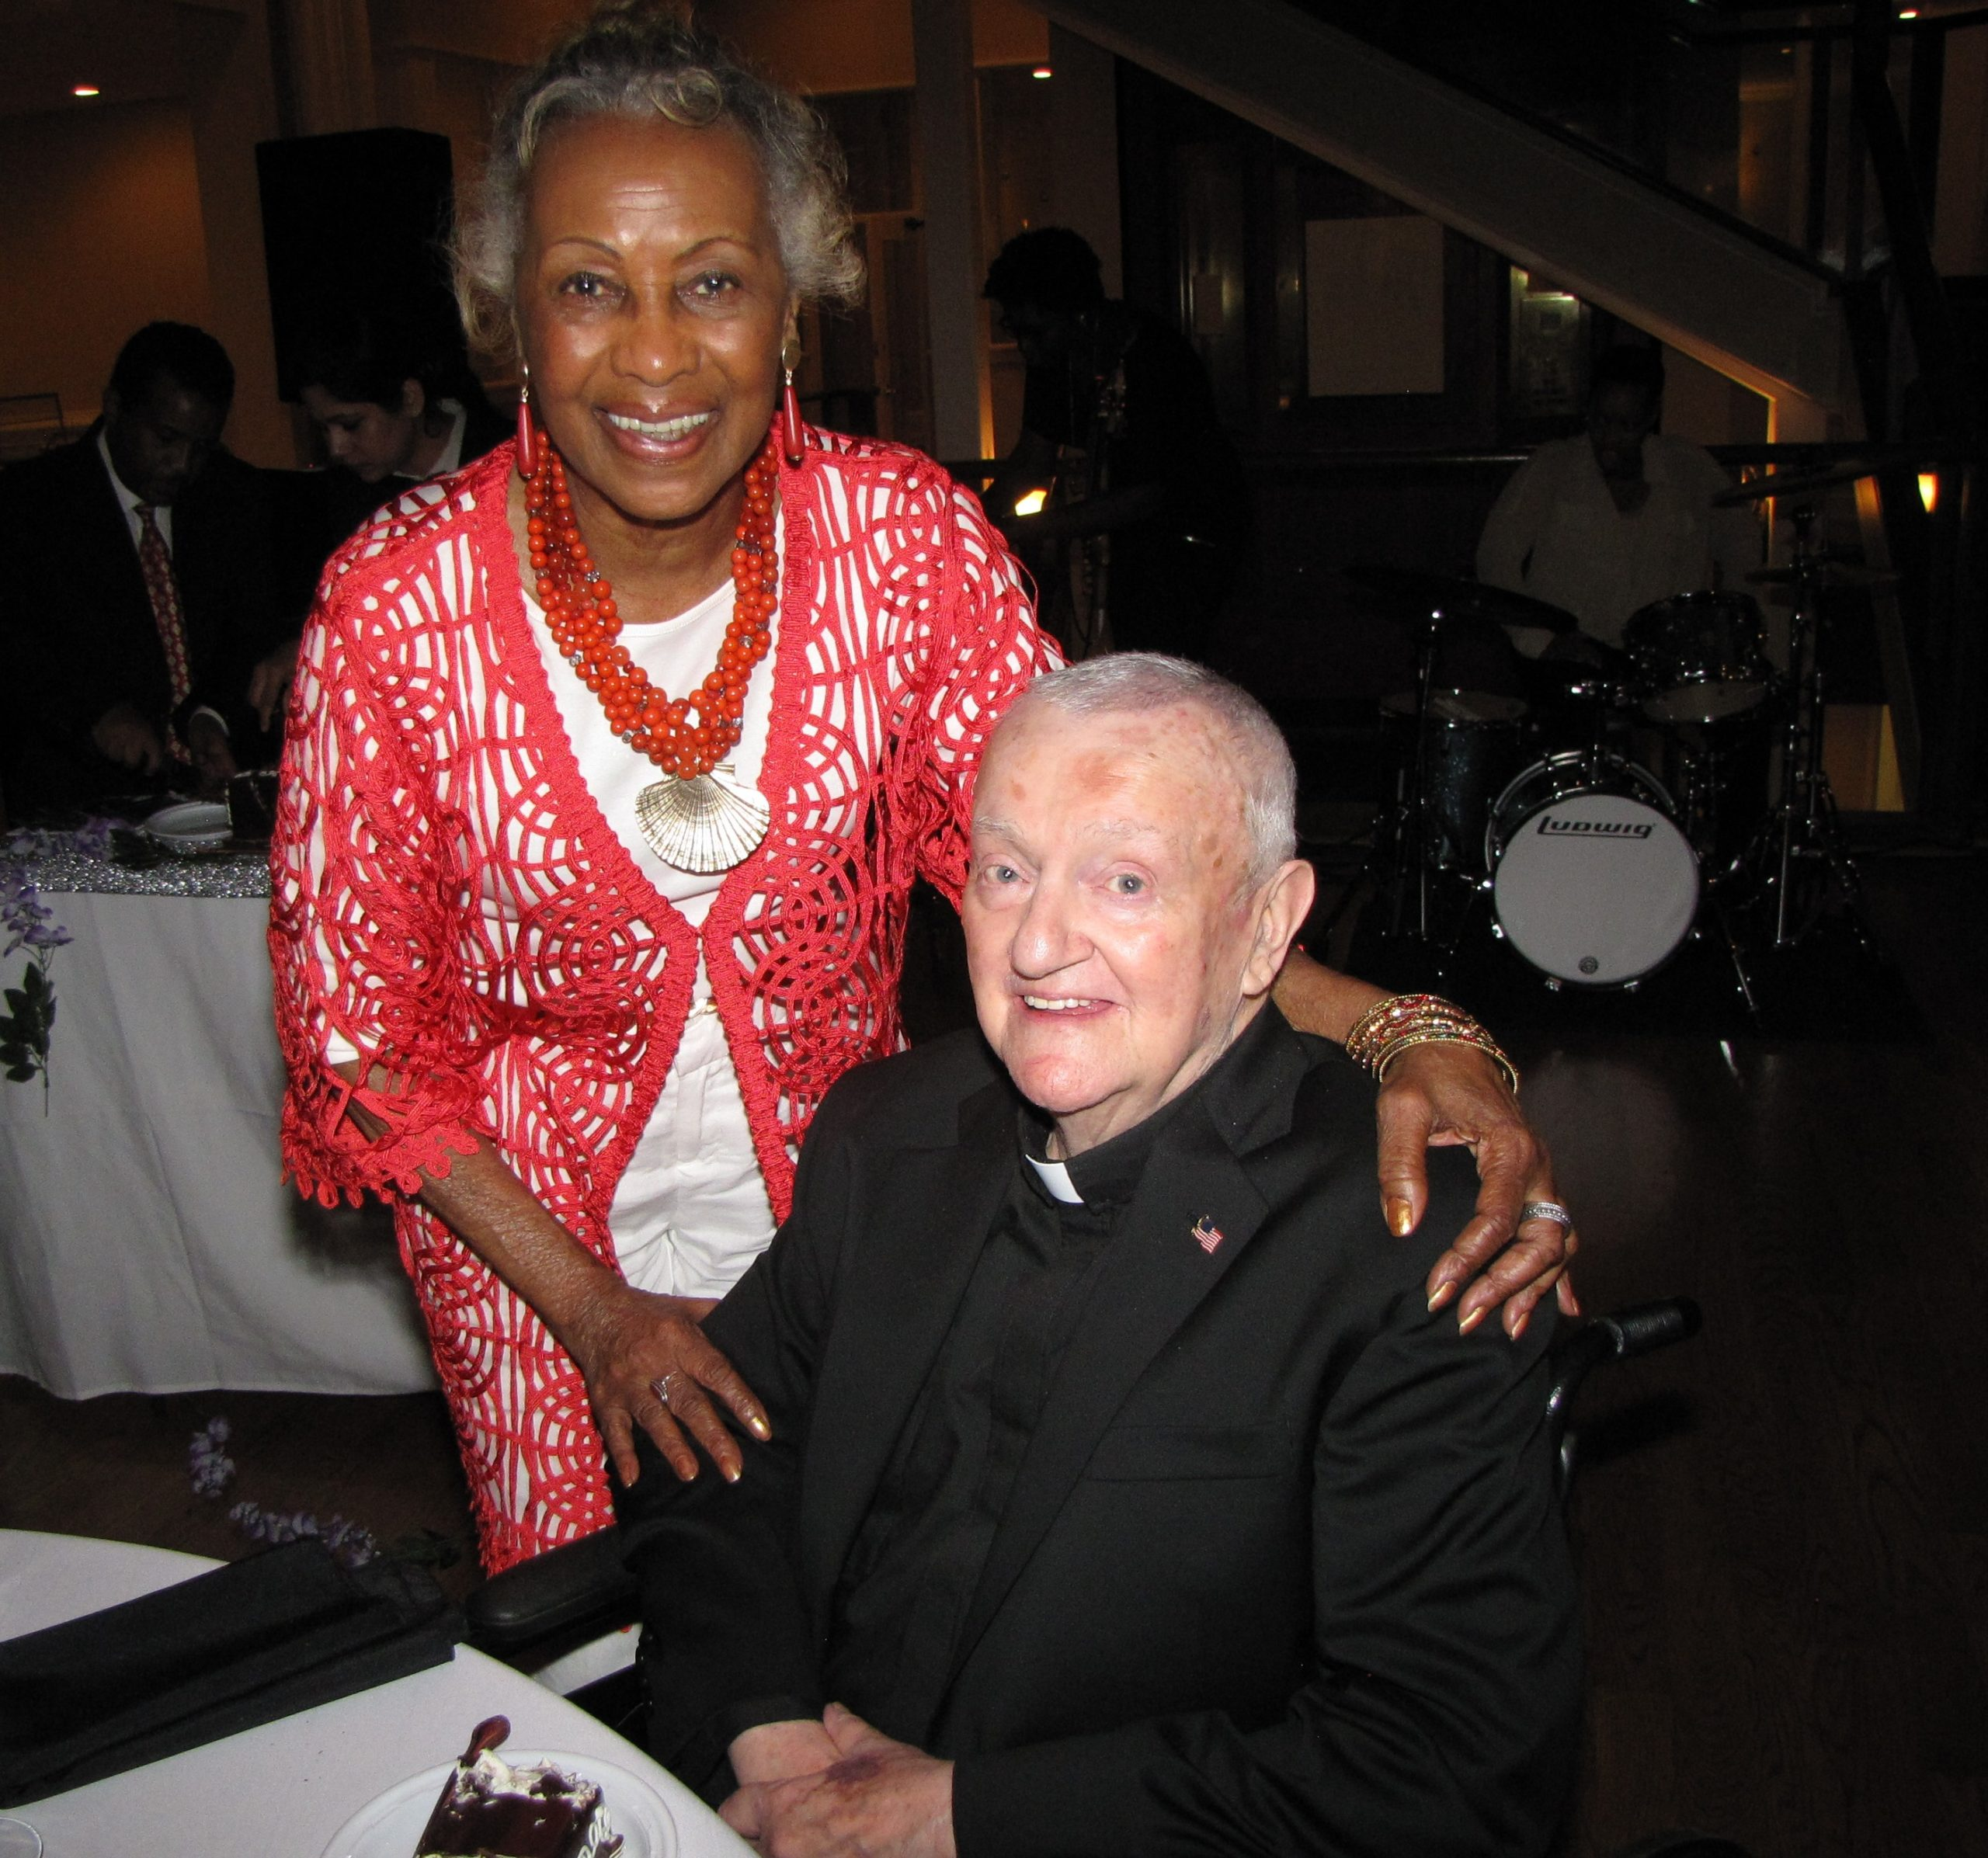 Remembering Monsignor William J. Linder